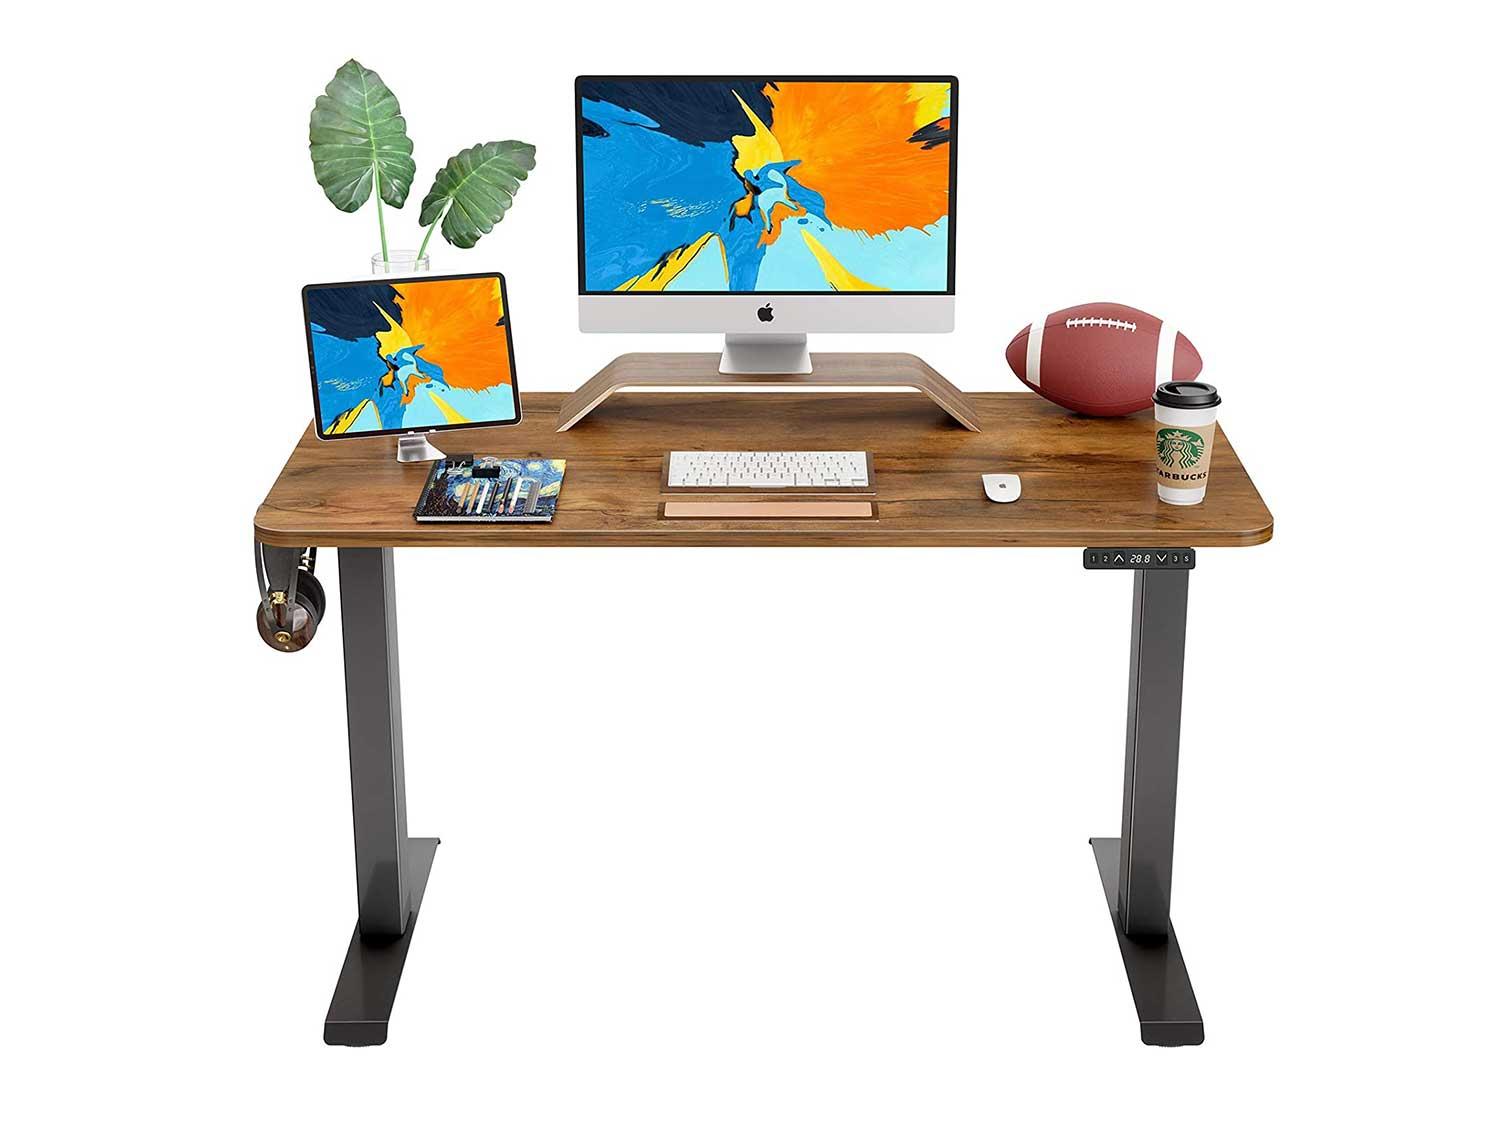 FAMISKY Dual Motor Adjustable Height Electric Standing Desk, 48 x 24 Inches Stand Up Home Office Desk with Splice Tabletop, Black Frame/Walnut Top